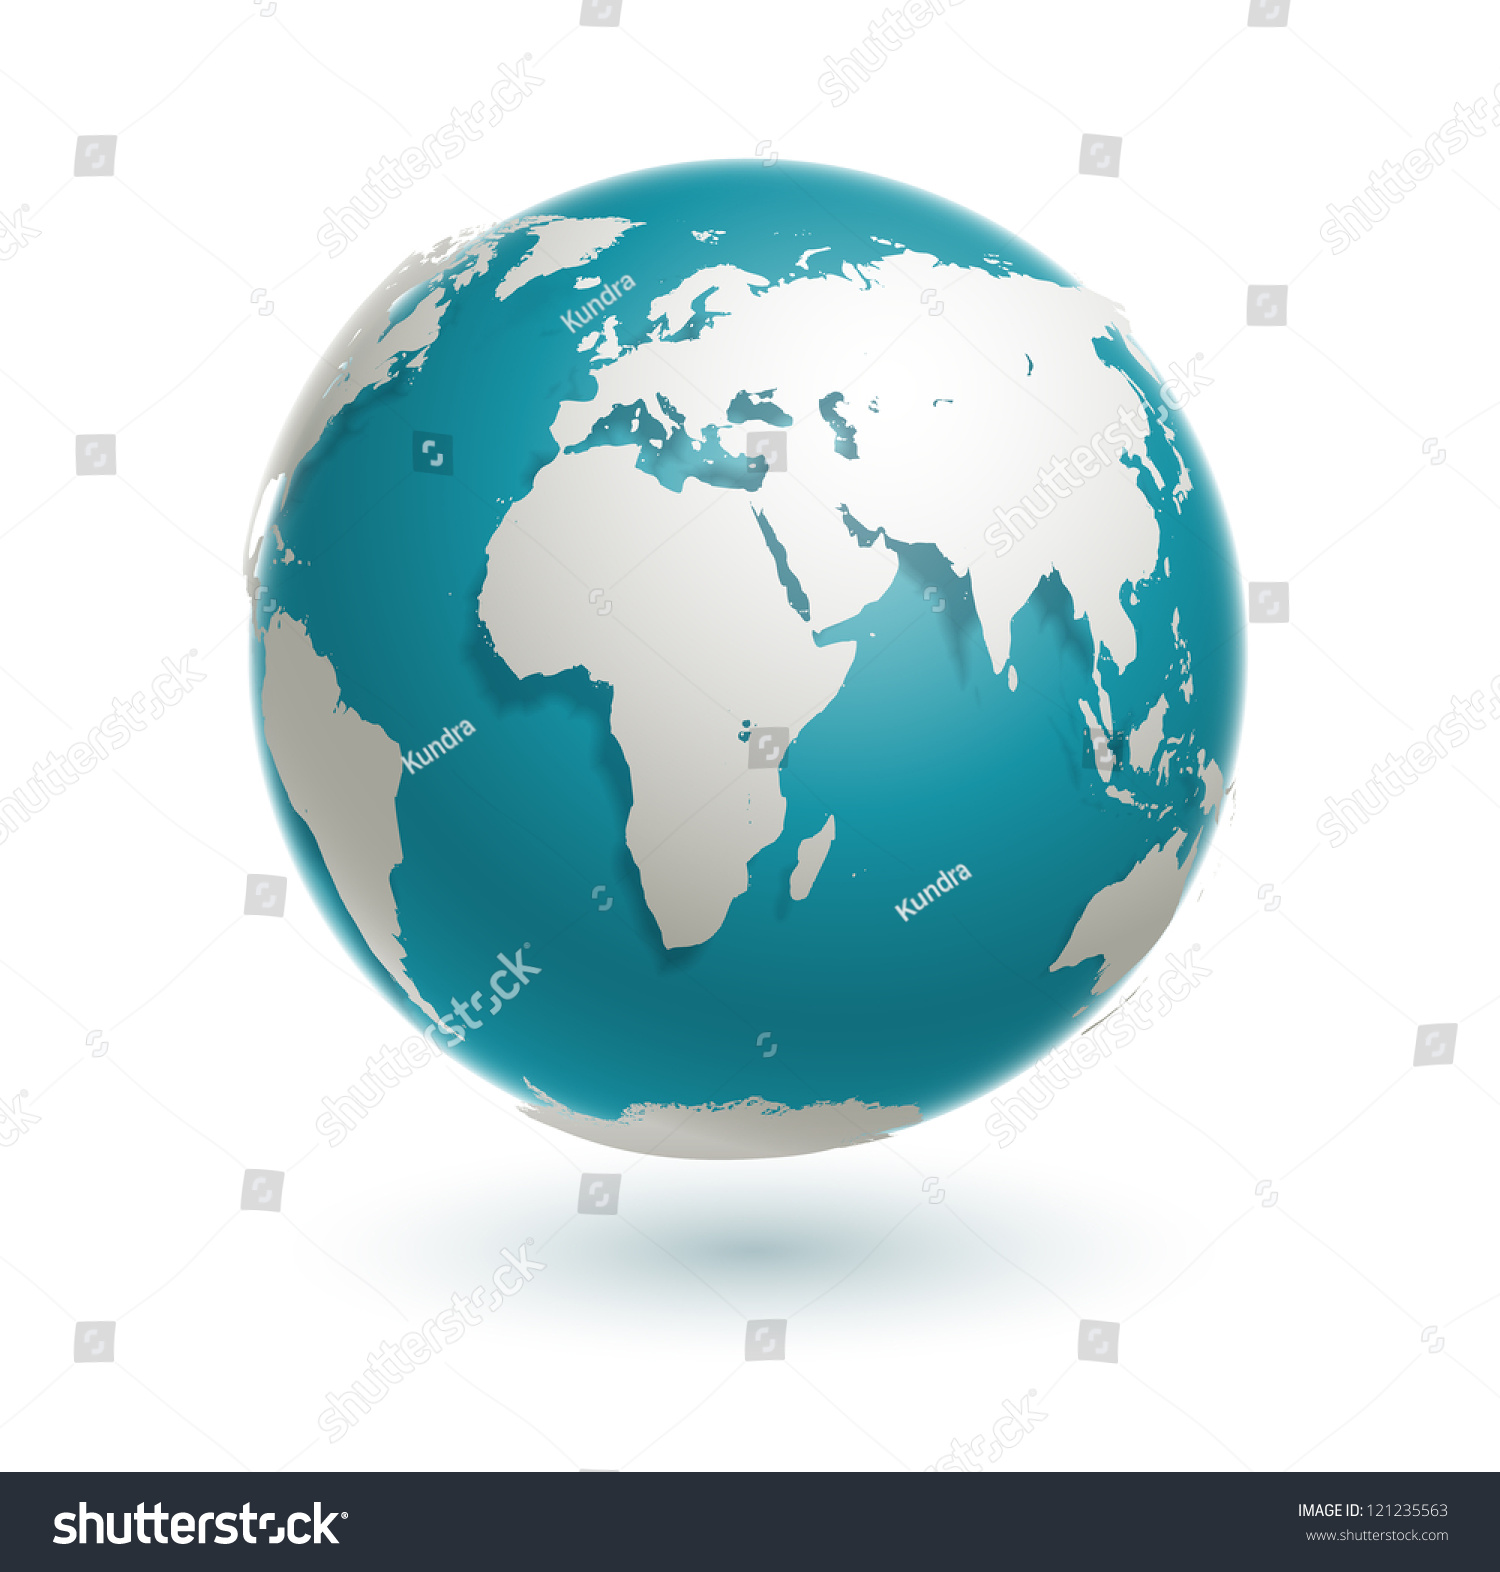 3d World Globe Icon With White Map Of The Continents Of